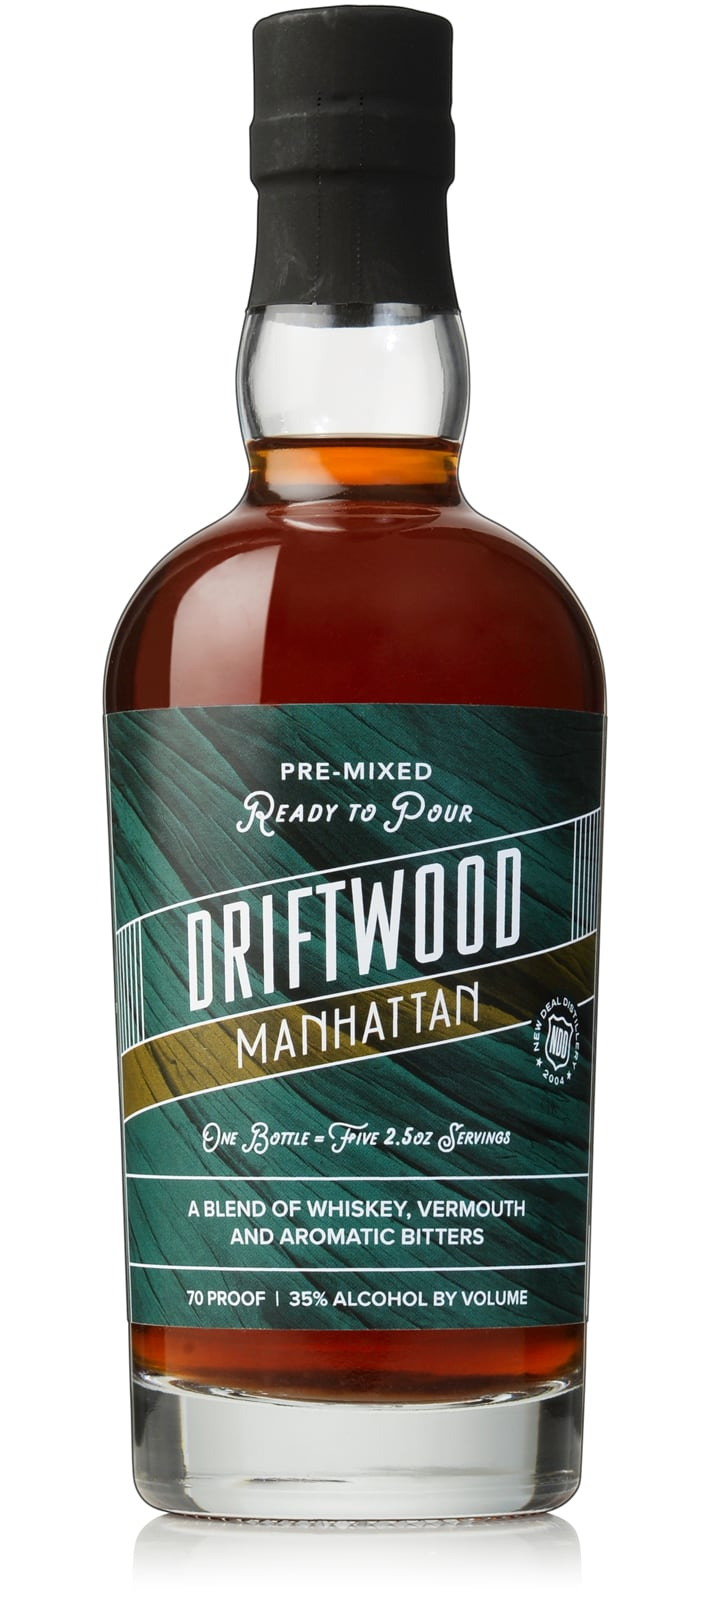 New Deal Driftwood Manhattan 2021